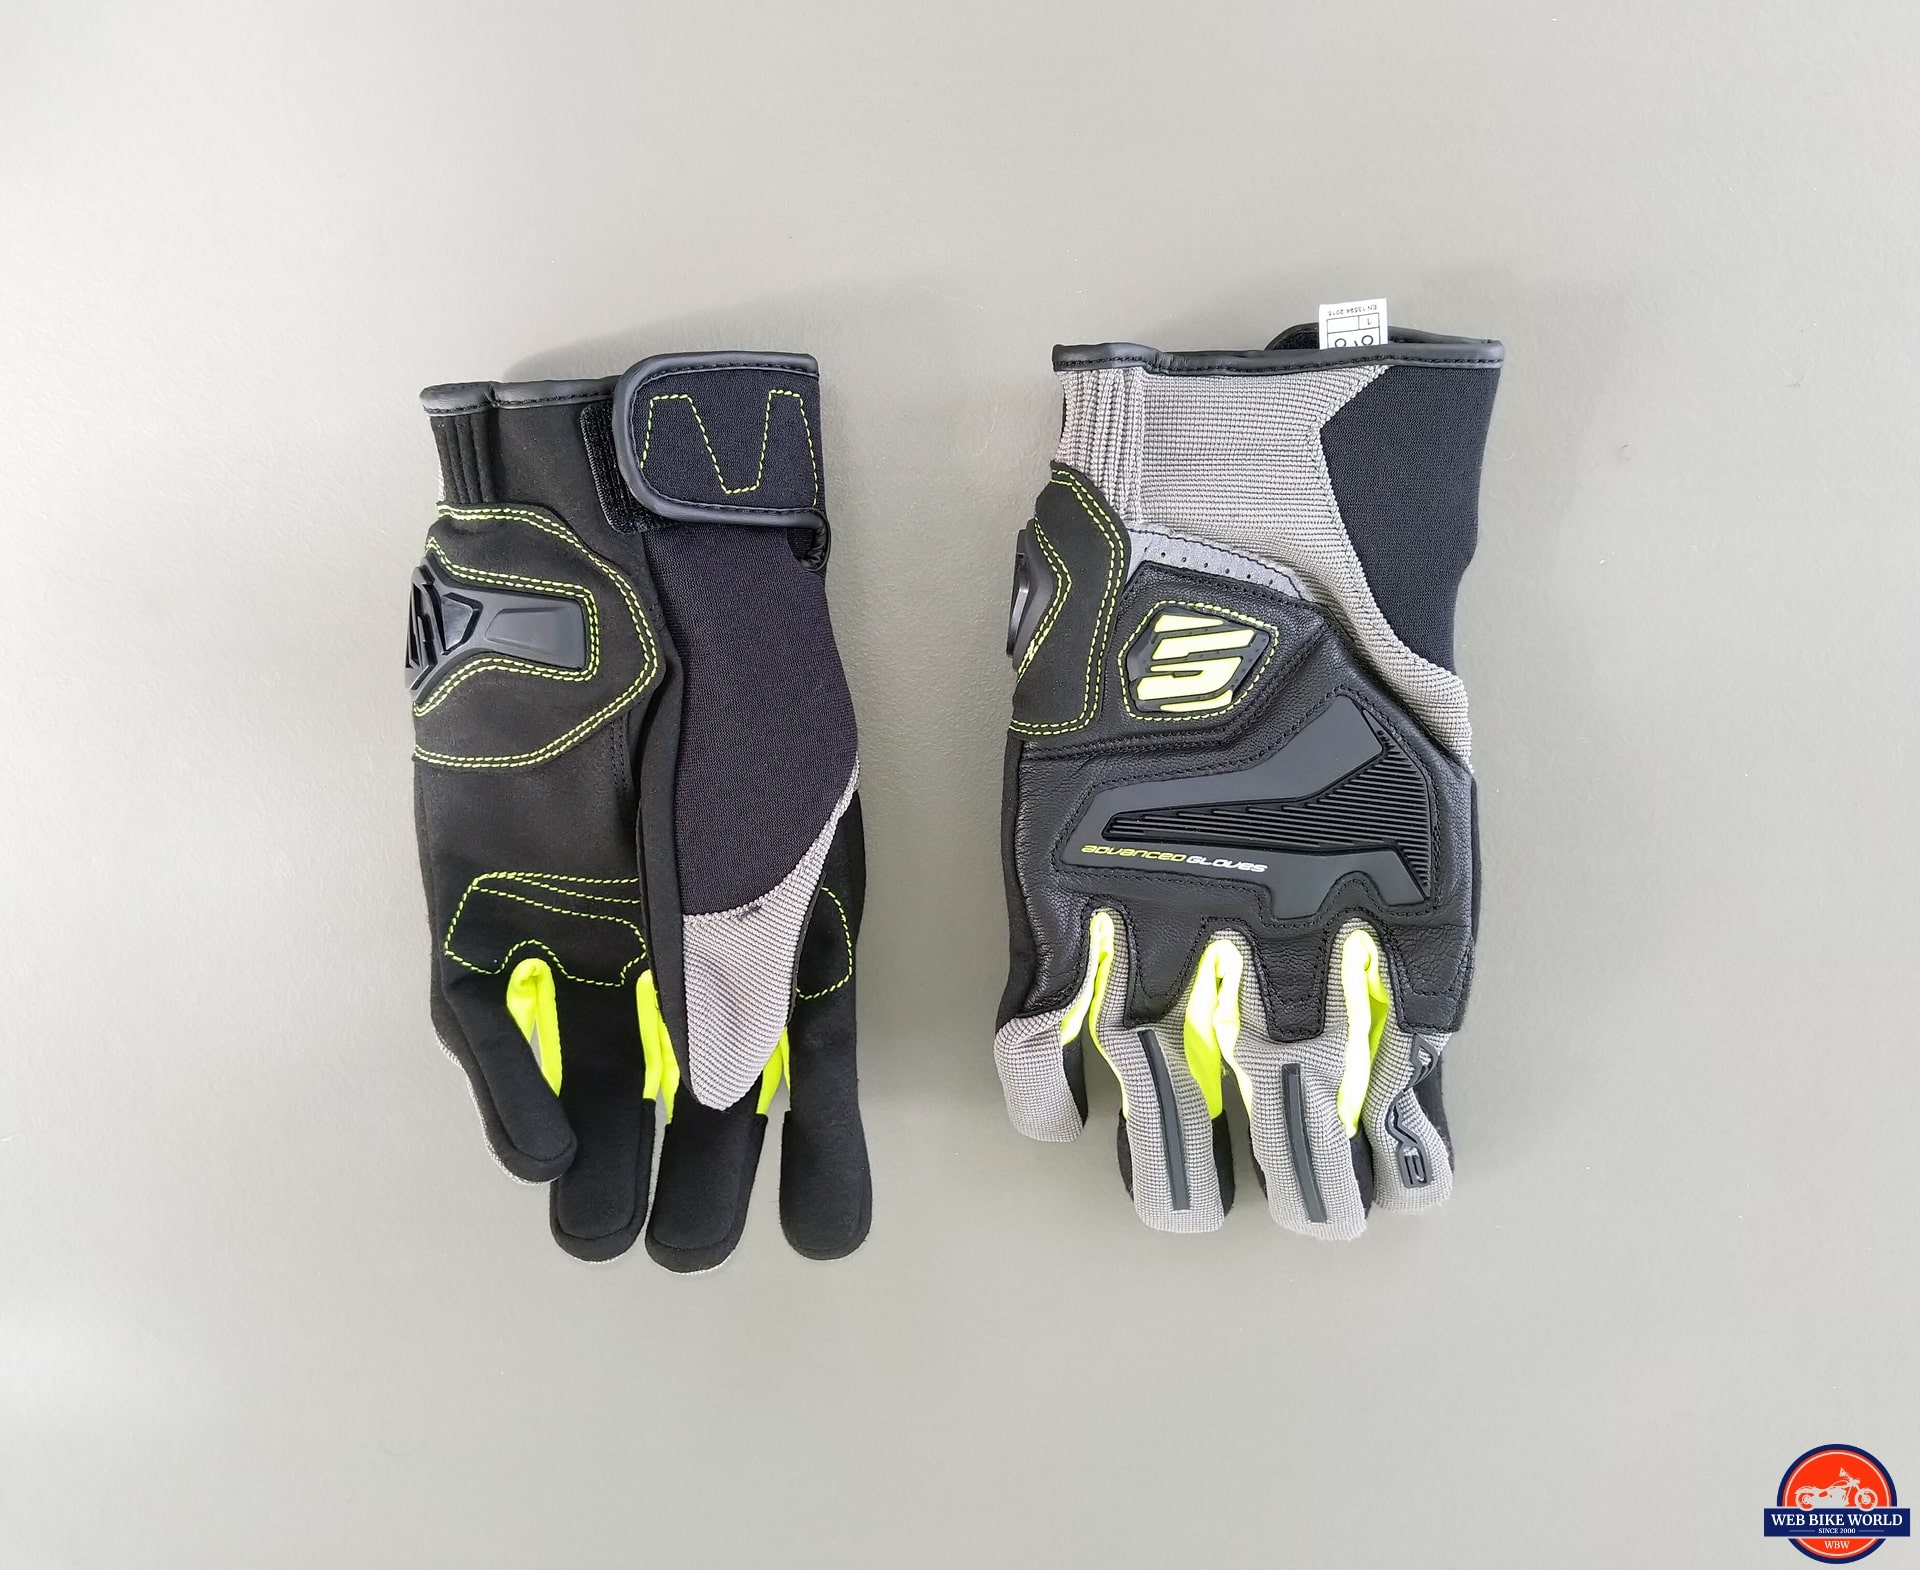 Five RS4 Gloves: Versatility Realized